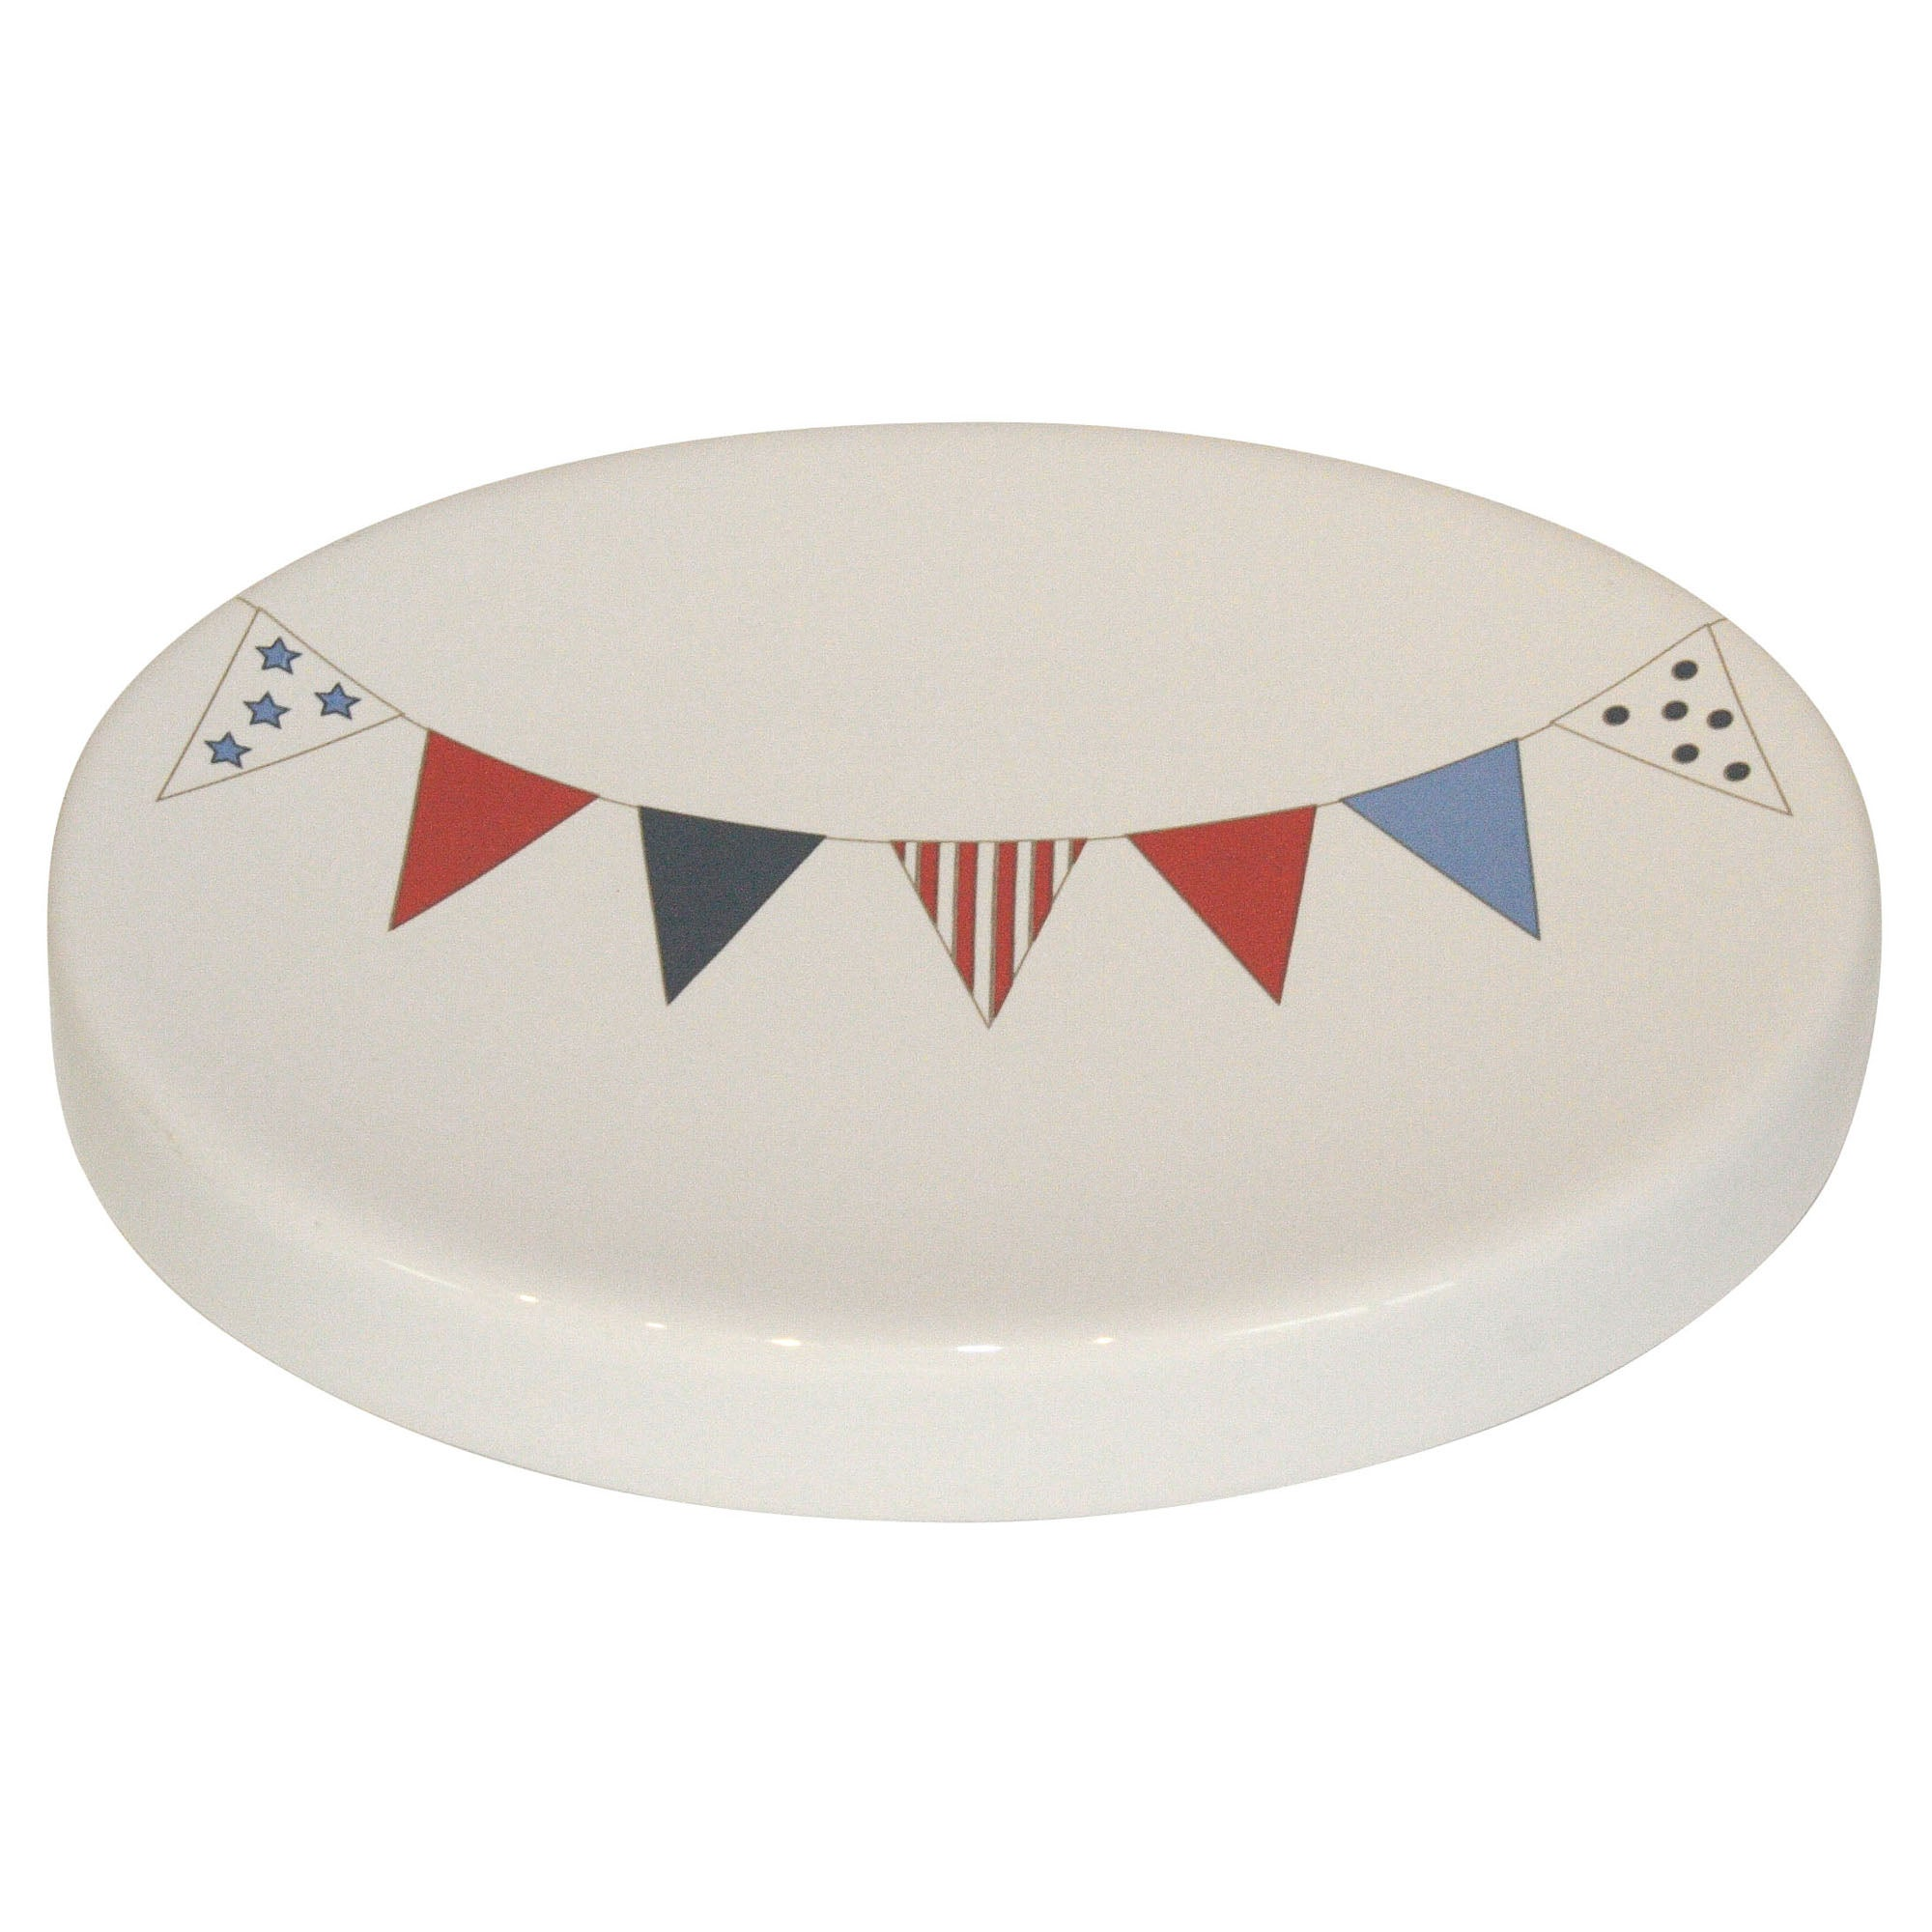 Bunting Collection Soap Dish